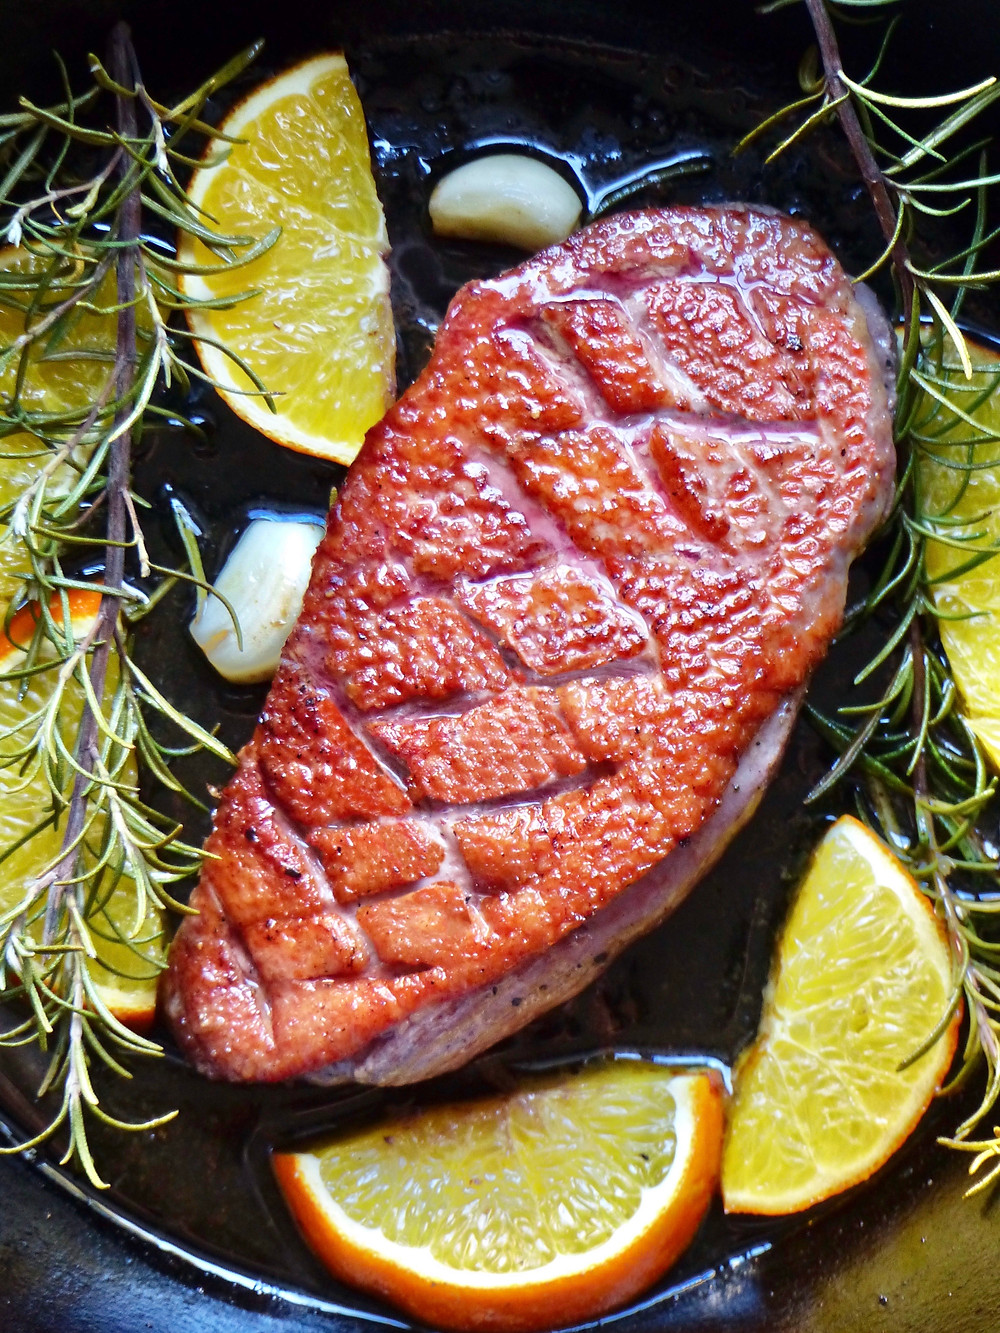 Pan seared duck breast with oranges, garlic and rosemary